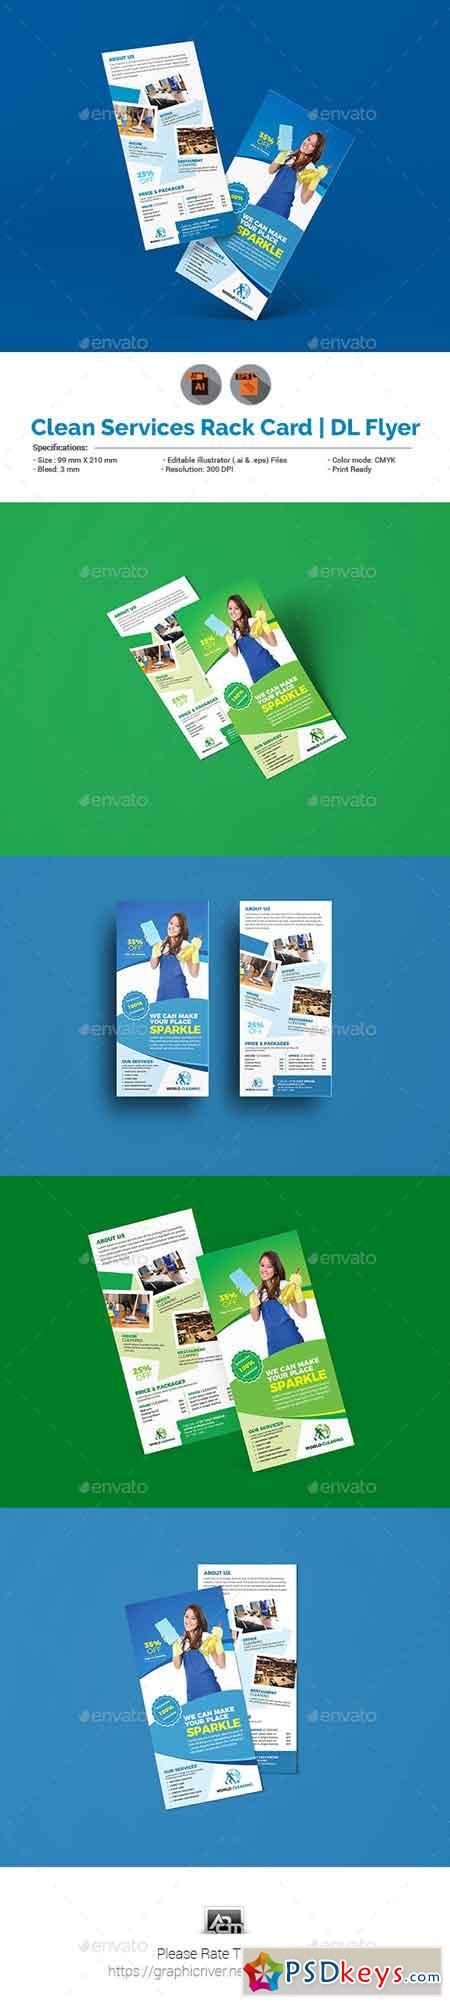 Cleaning Service Rack Card DL Flyer Template 23070123